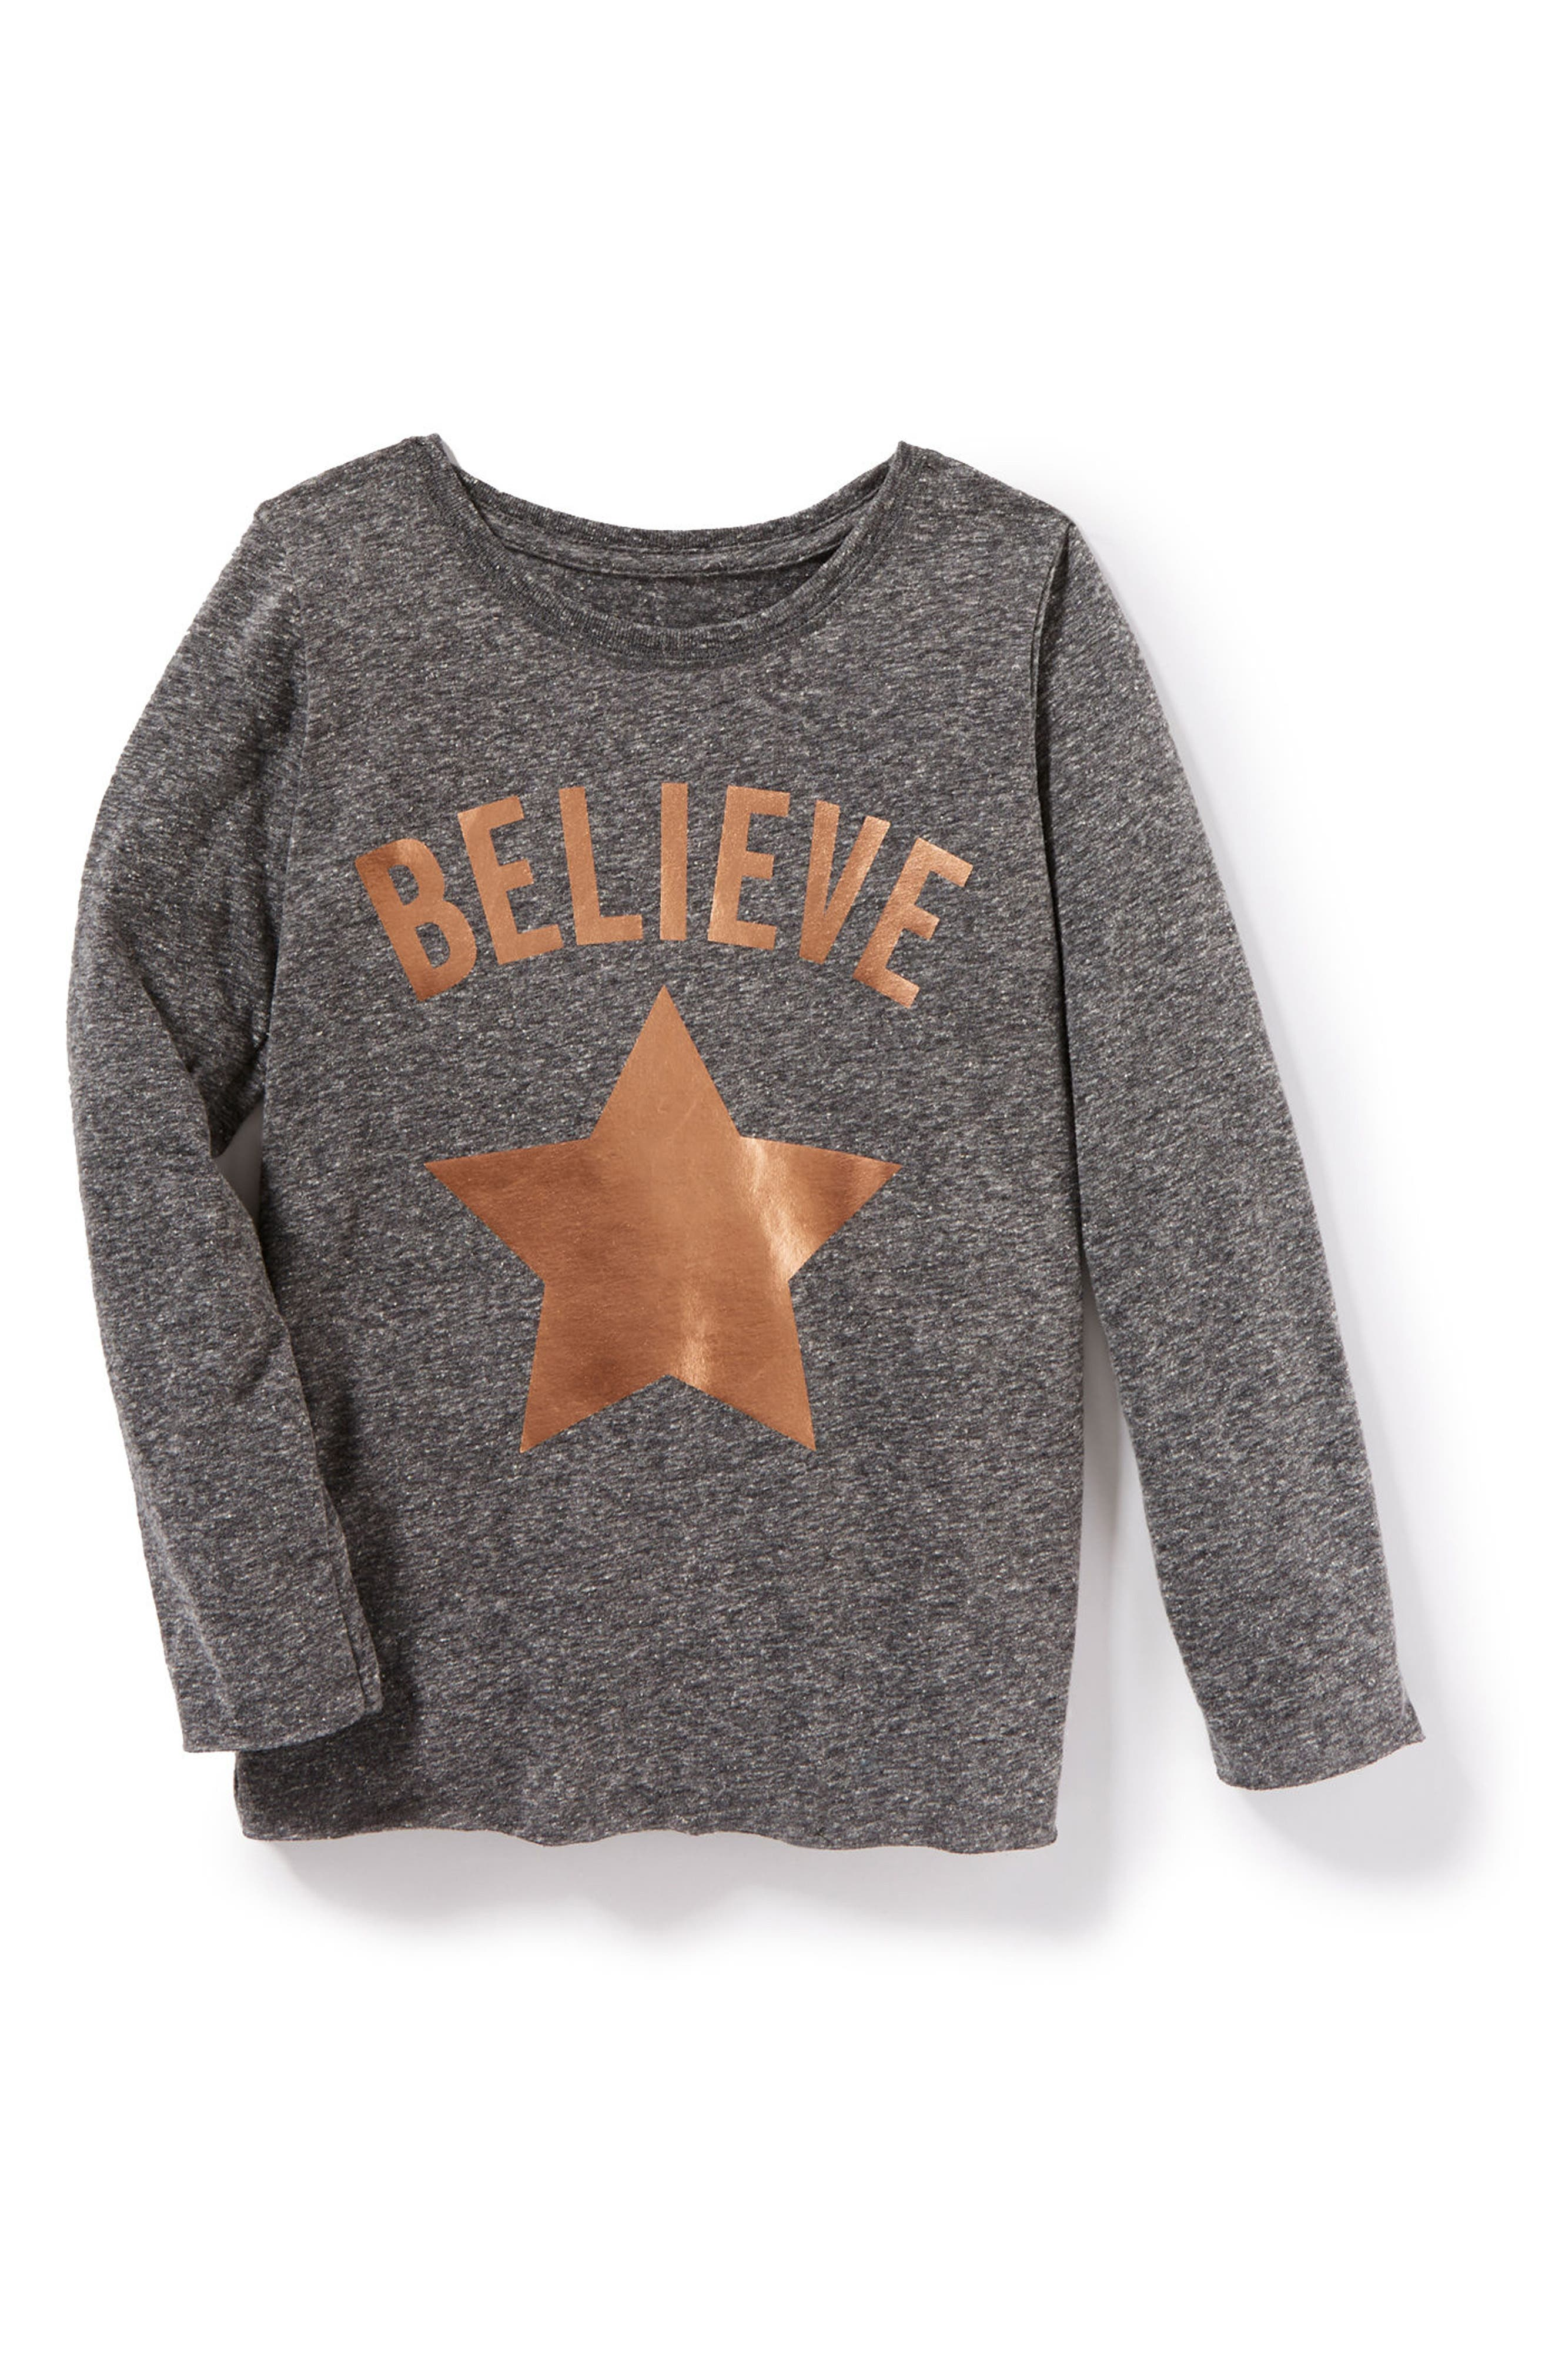 Believe Graphic Tee,                             Main thumbnail 1, color,                             Grey Heather